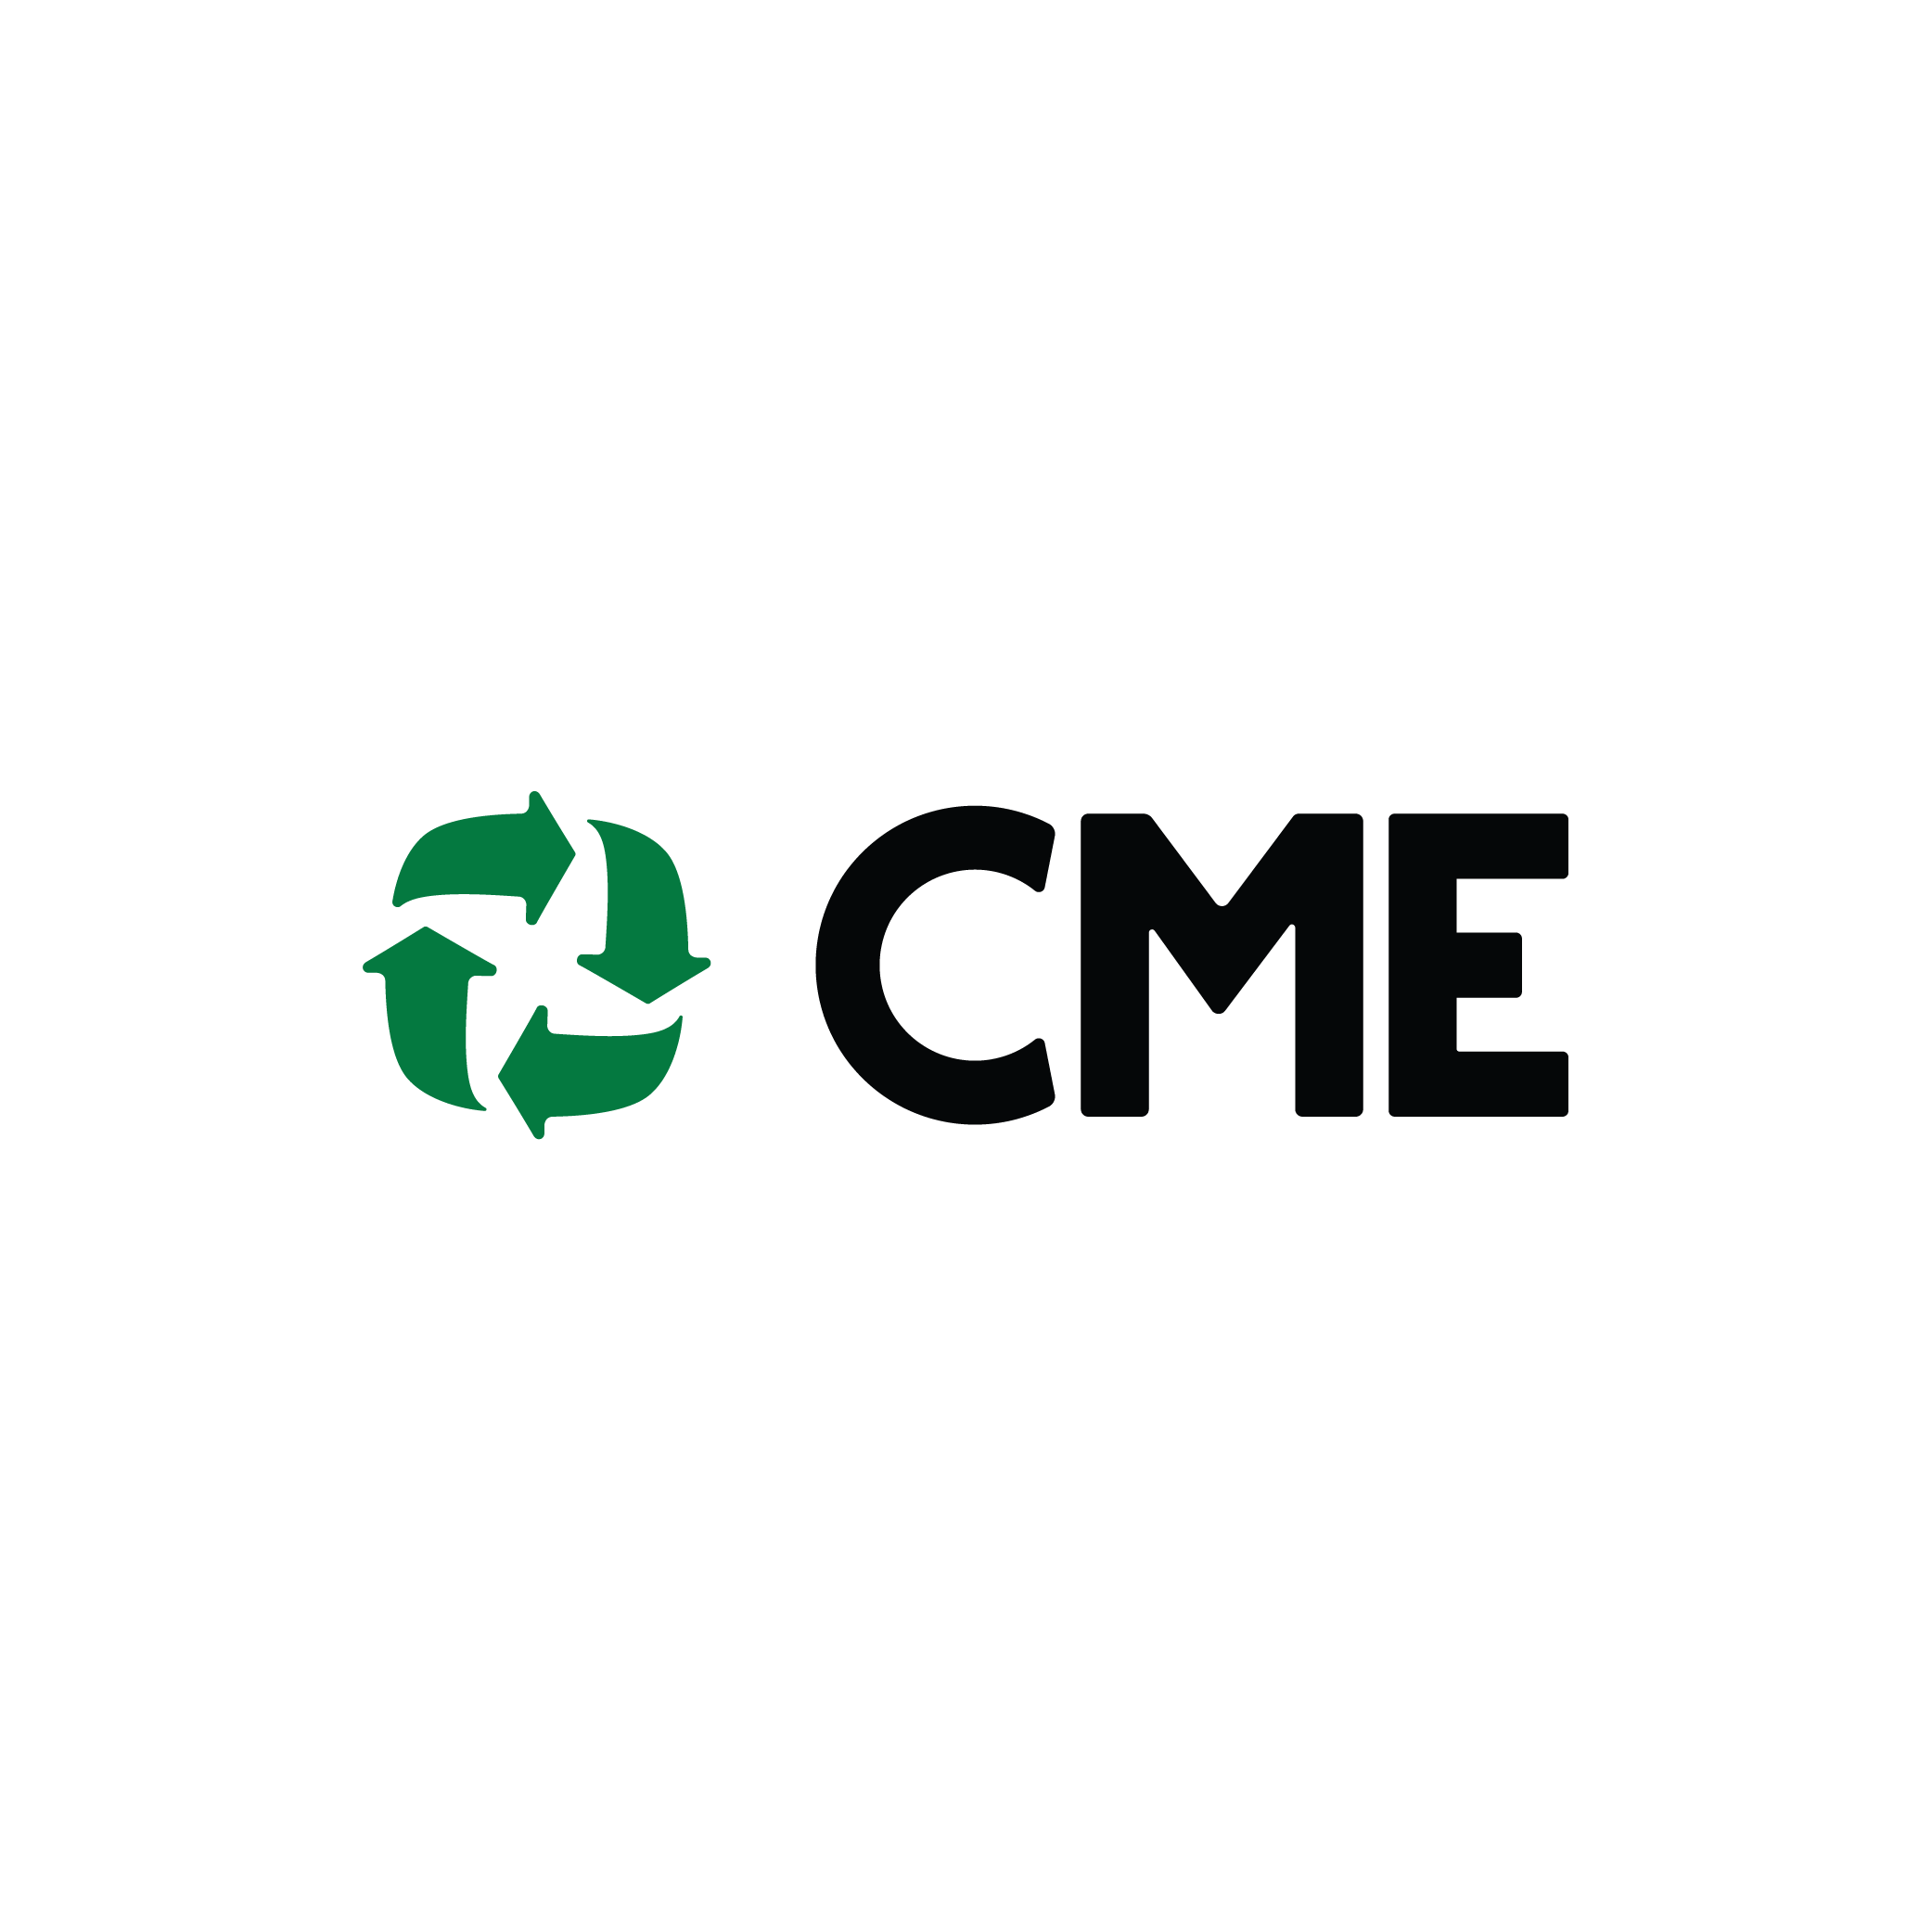 CME Co-Brand  download